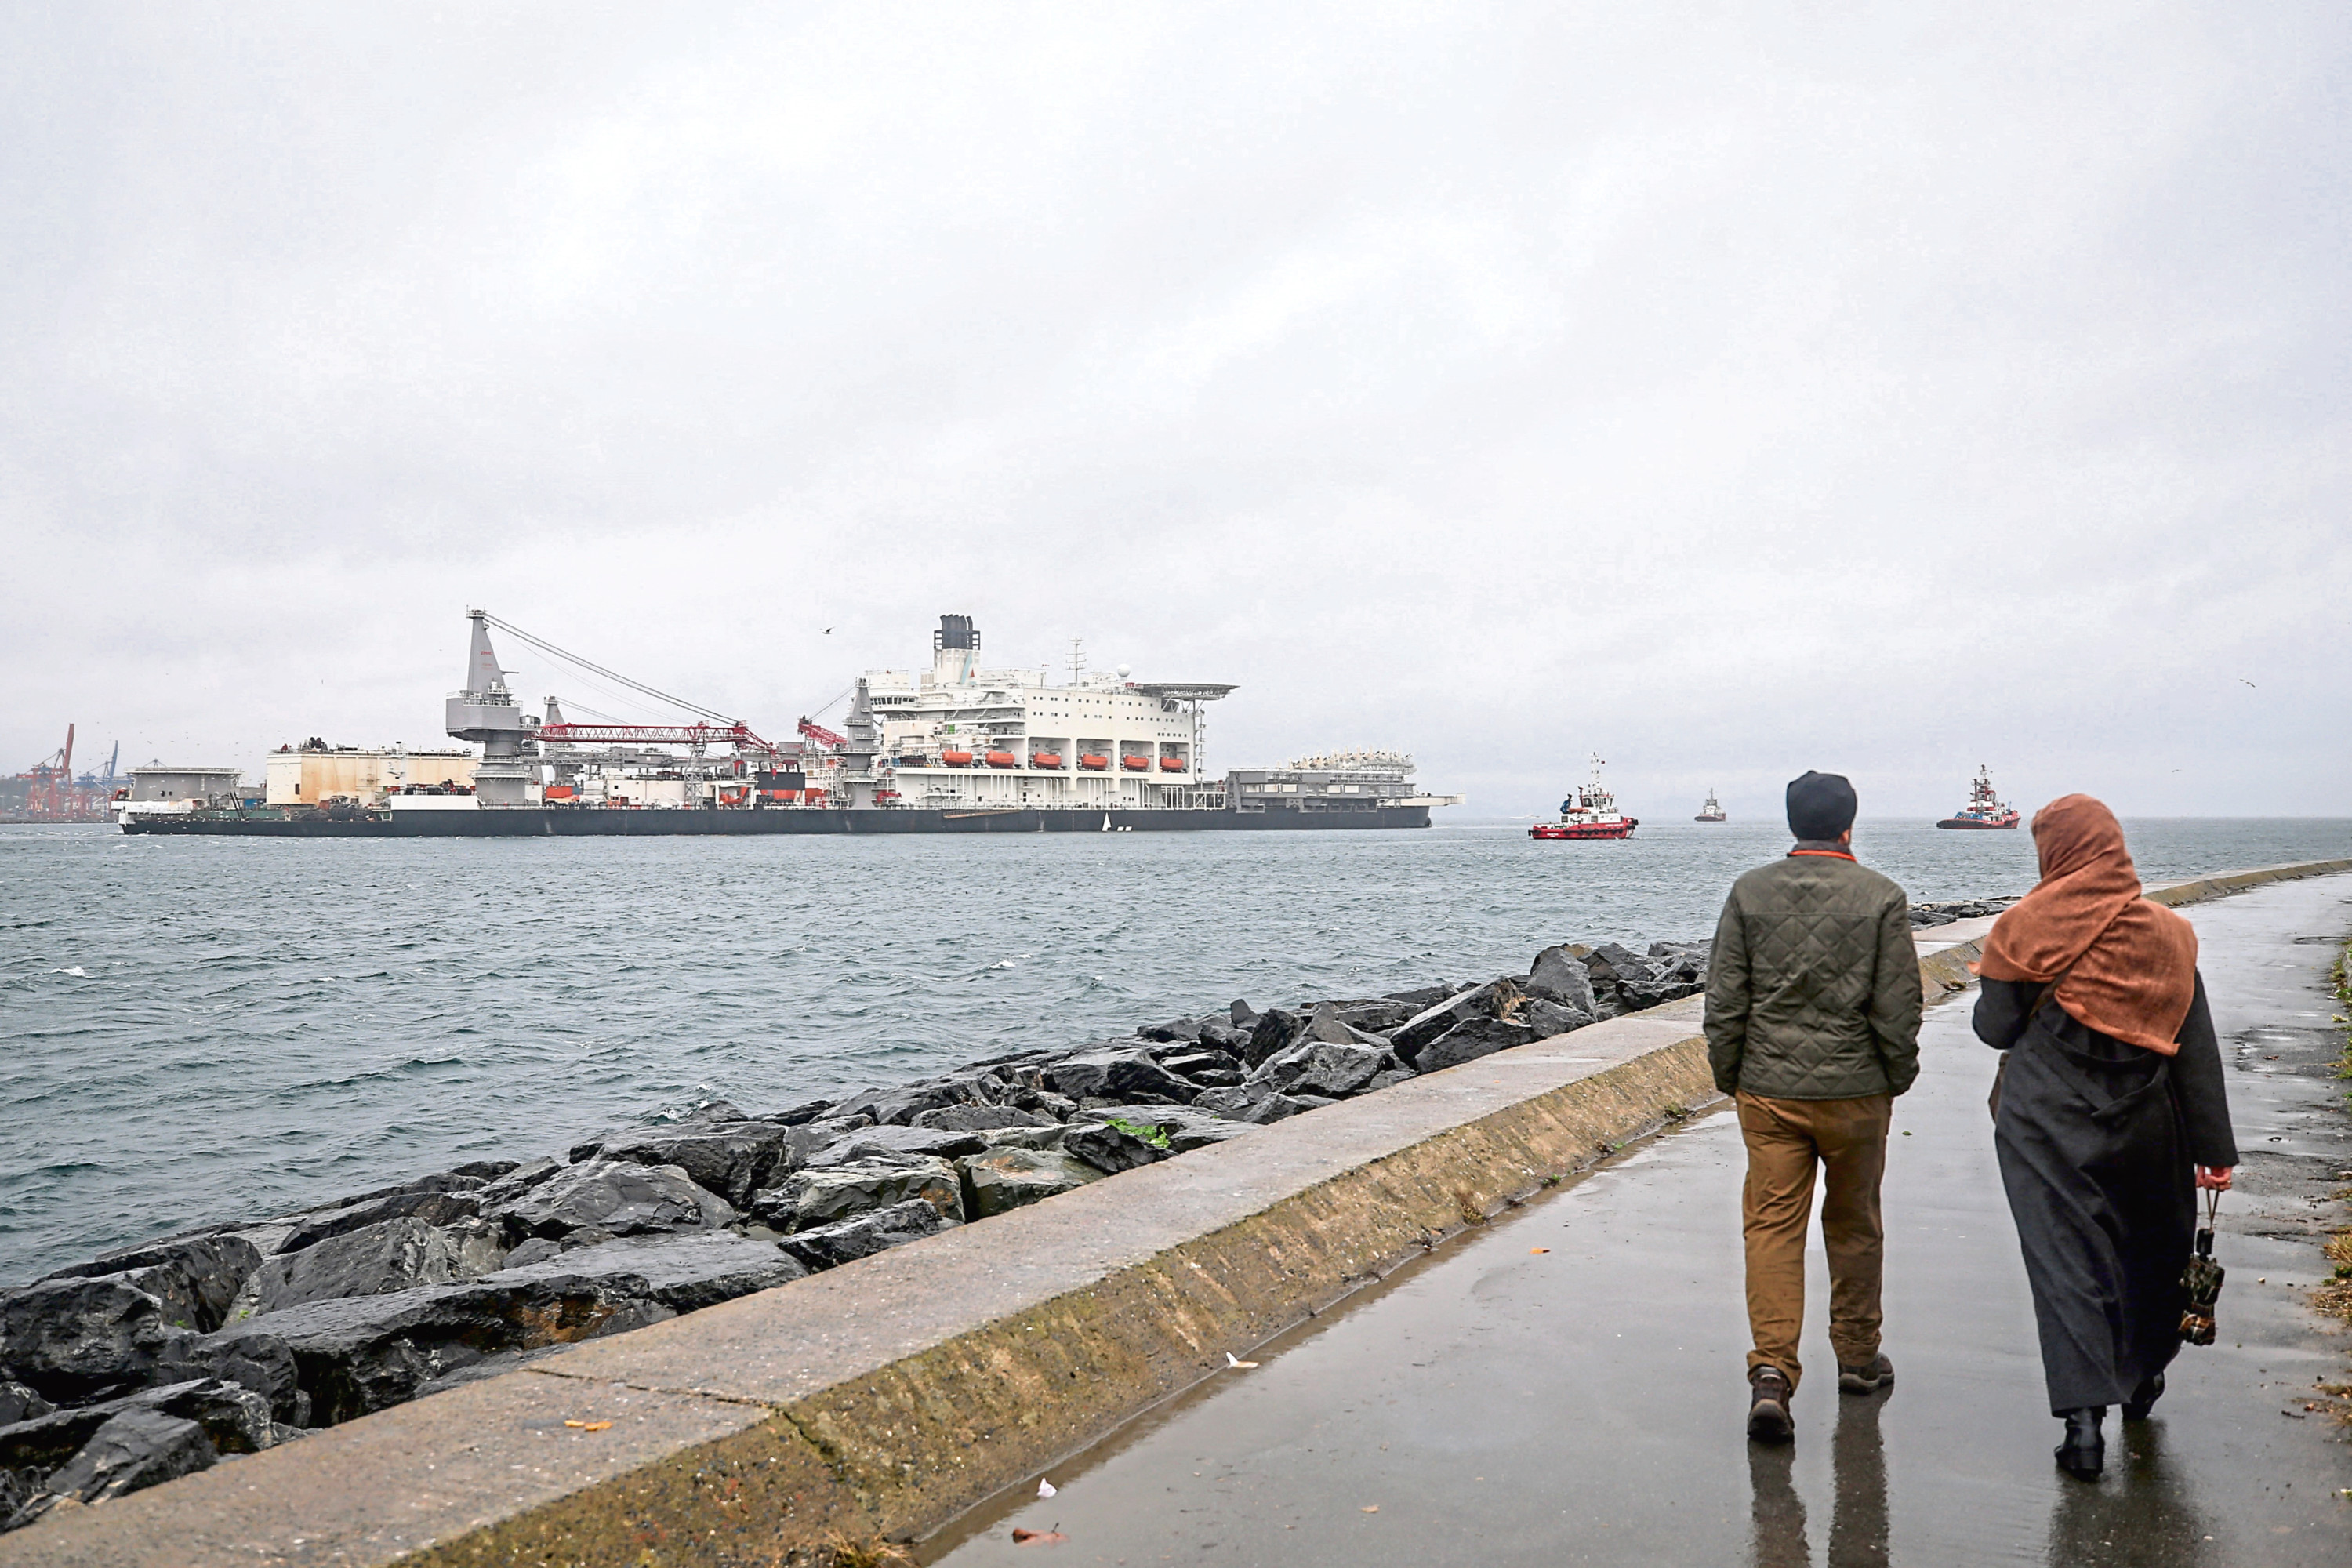 A man and a woman walk through the coastline as the Pioneering Spirit, the world's largest construction ship, passes through Bosphorus to lay natural gas pipe to the deepwater of TurkStream in Istanbul, Turkey on November 22, 2018.